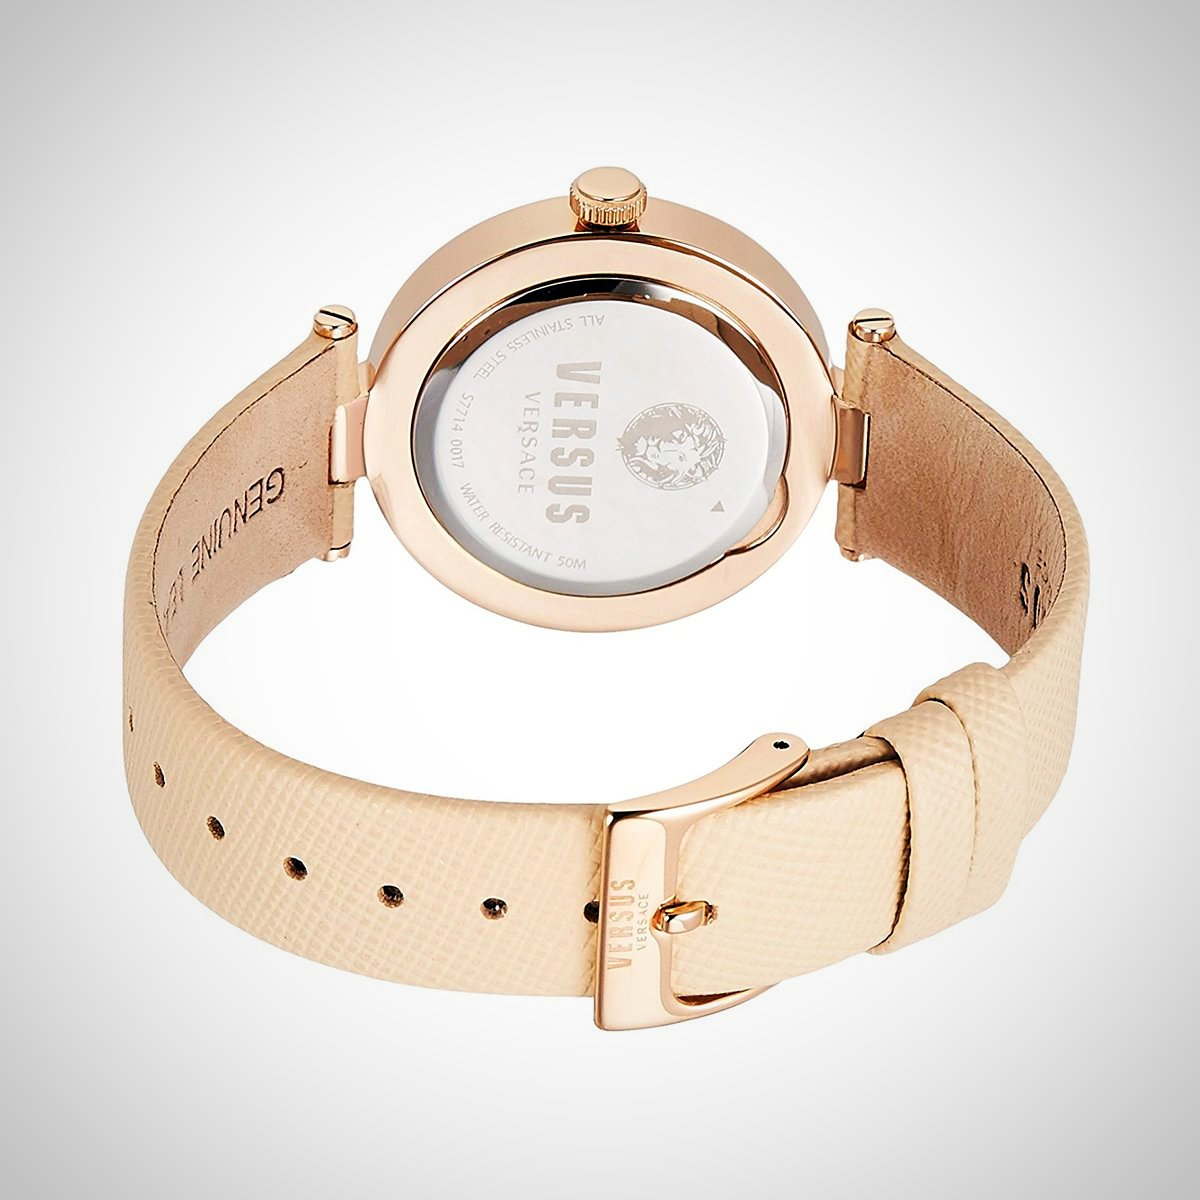 Versus by Versace S77140017 Ladies Logo Watch